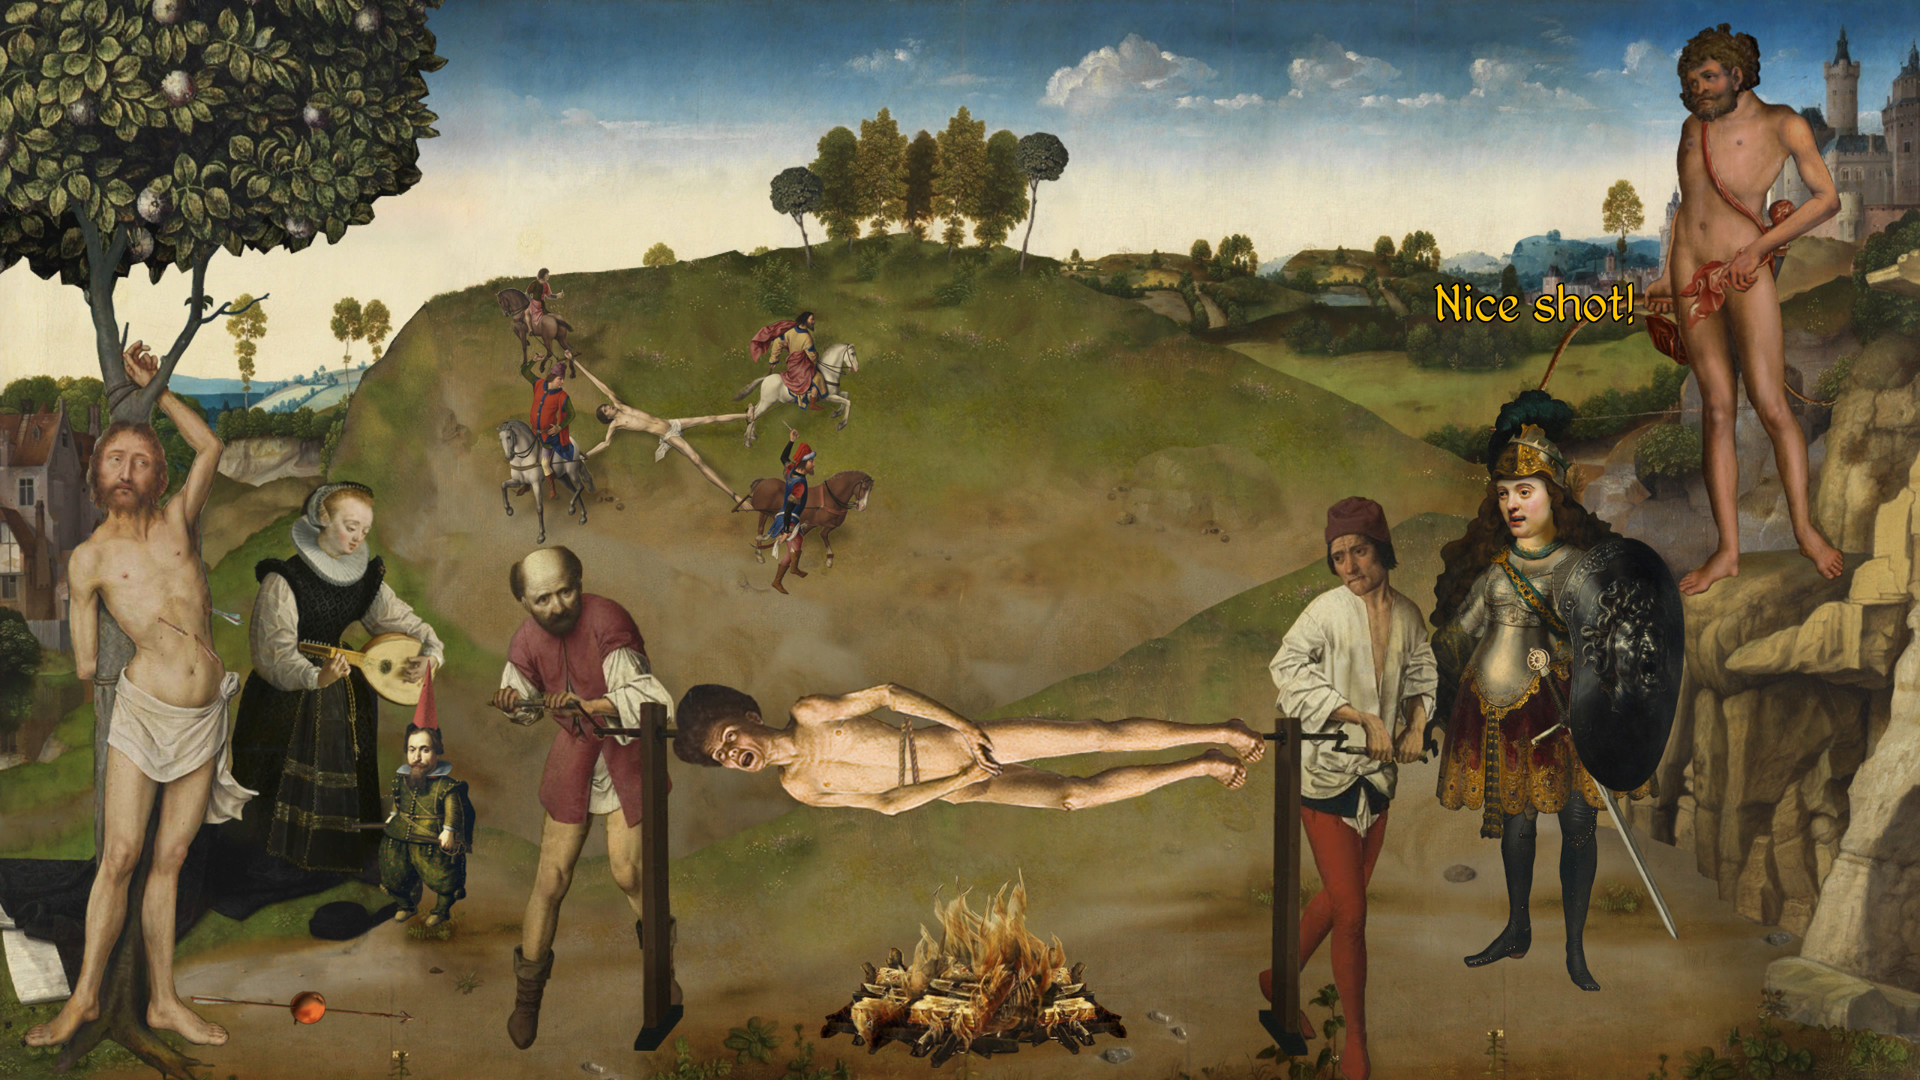 A man being slowly roasted alive.